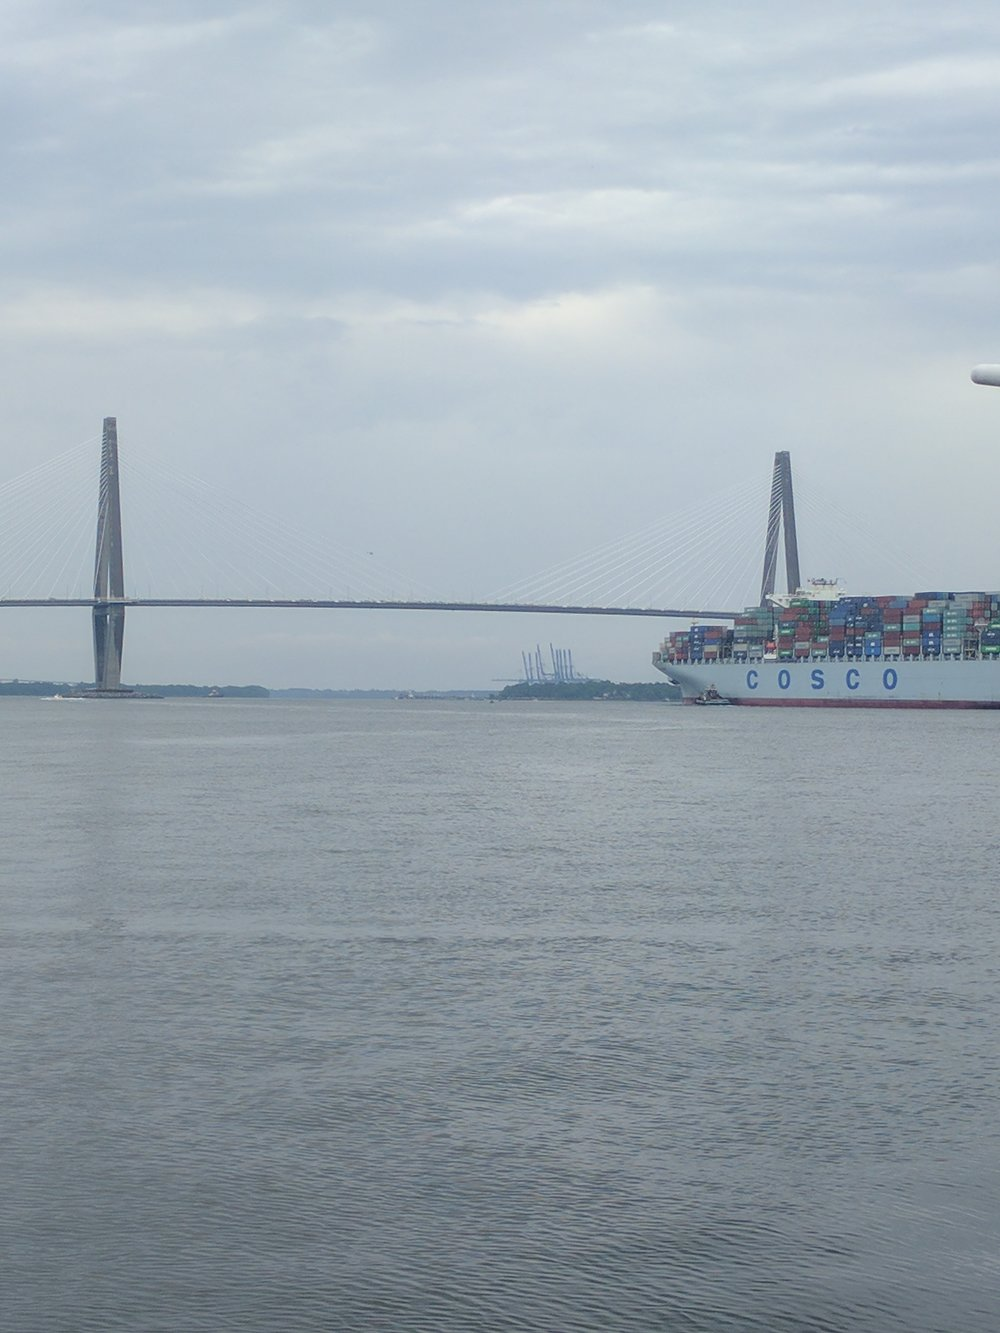 DevelopmentApproachingRavenelBridge6.jpg